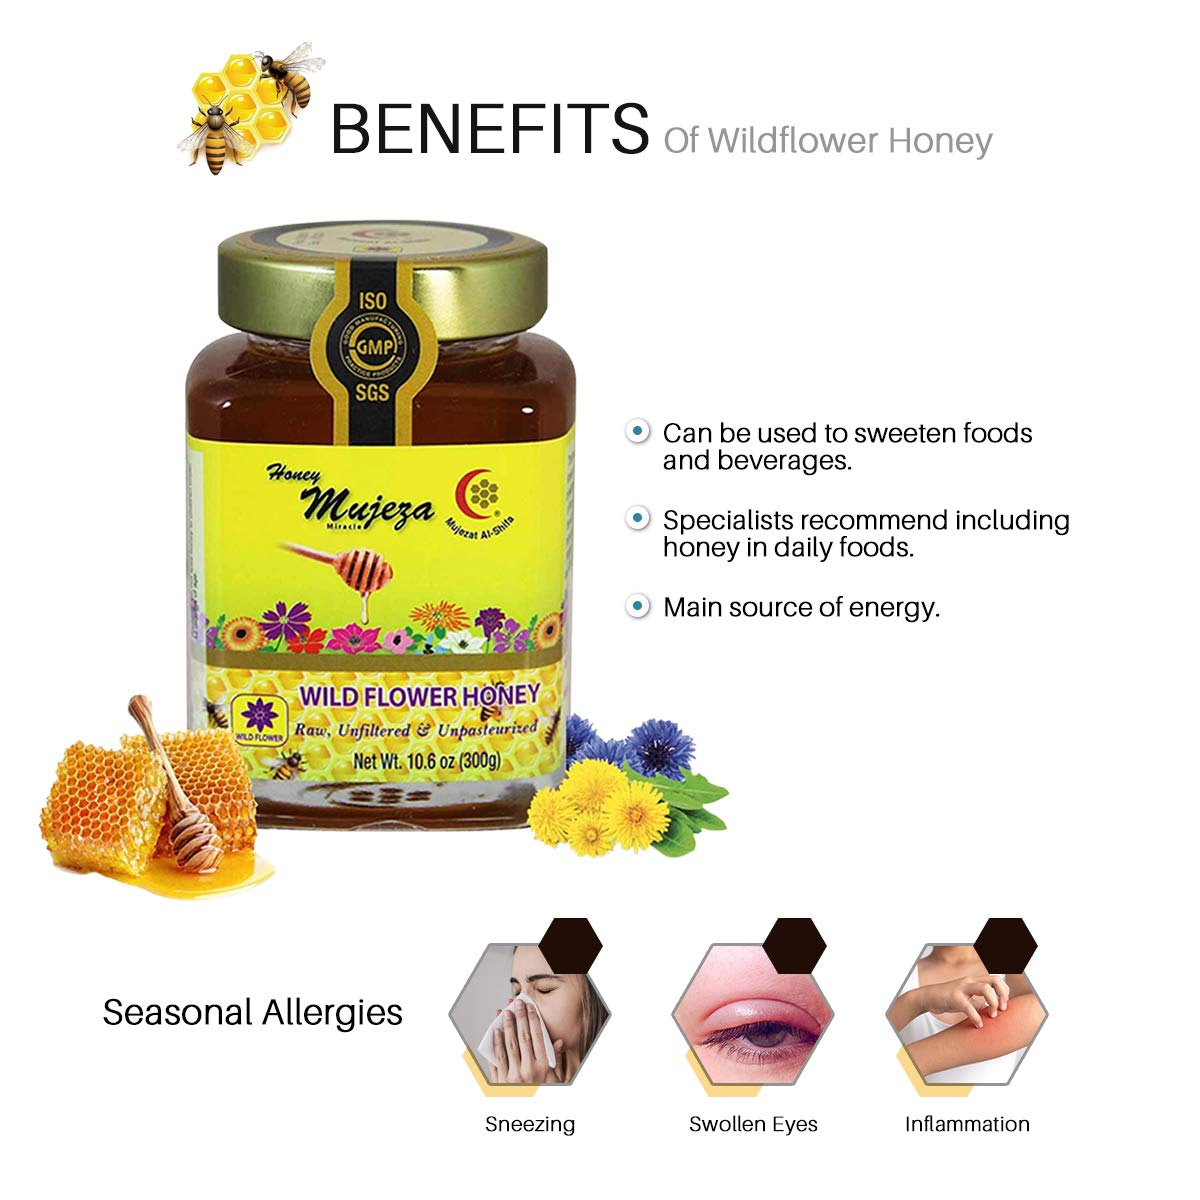 Mujeza Raw Honey 4 Mixed Jars (1 Black Seed Honey + 1 Ginger Honey + 1 Cinnamon & Turmeric Honey + 1 Wildflower Honey) Unheated - Unfiltered - Non GMO - Gluten Free - Unpasteurized - Glass Jars 300g / 10.6oz